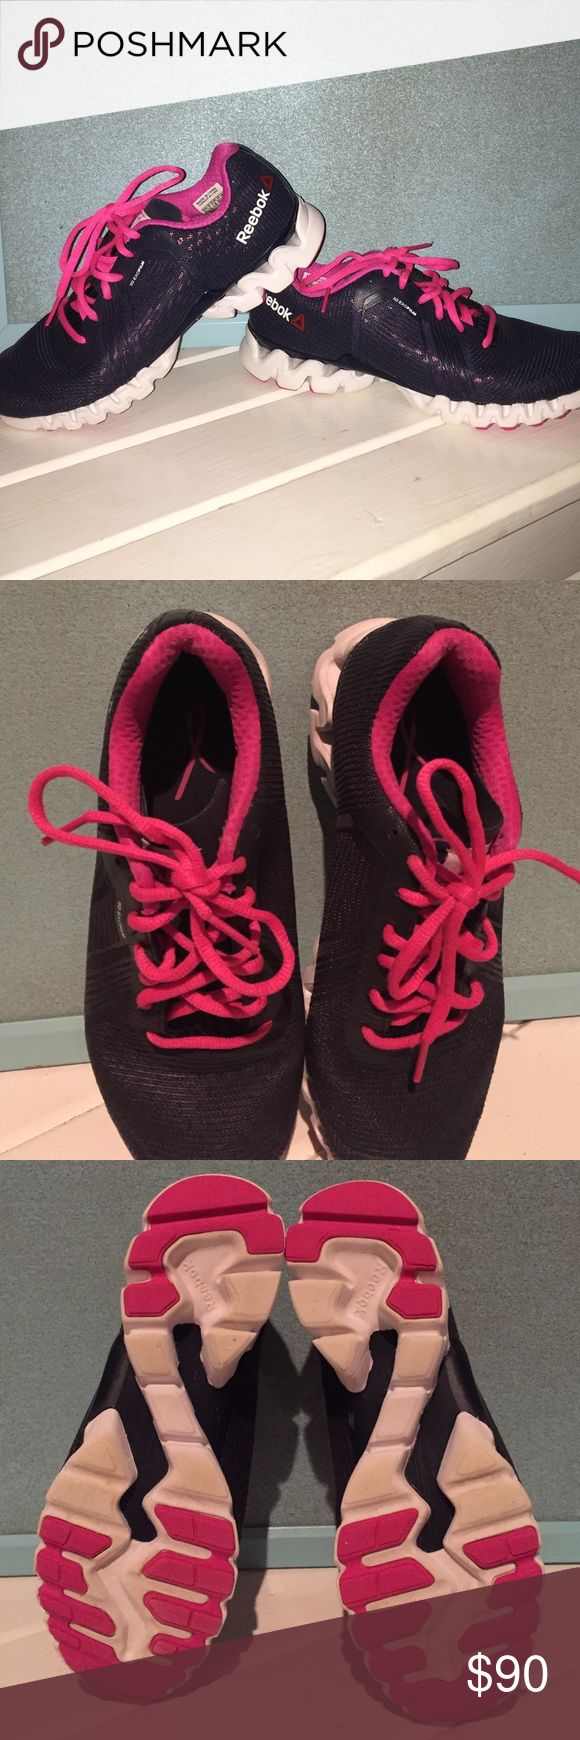 Navy and pink breast cancer edition Crossfit shoe Reebok crossfit shoe in excellent condition. Breast cancer awareness edition Reebok Shoes Athletic Shoes